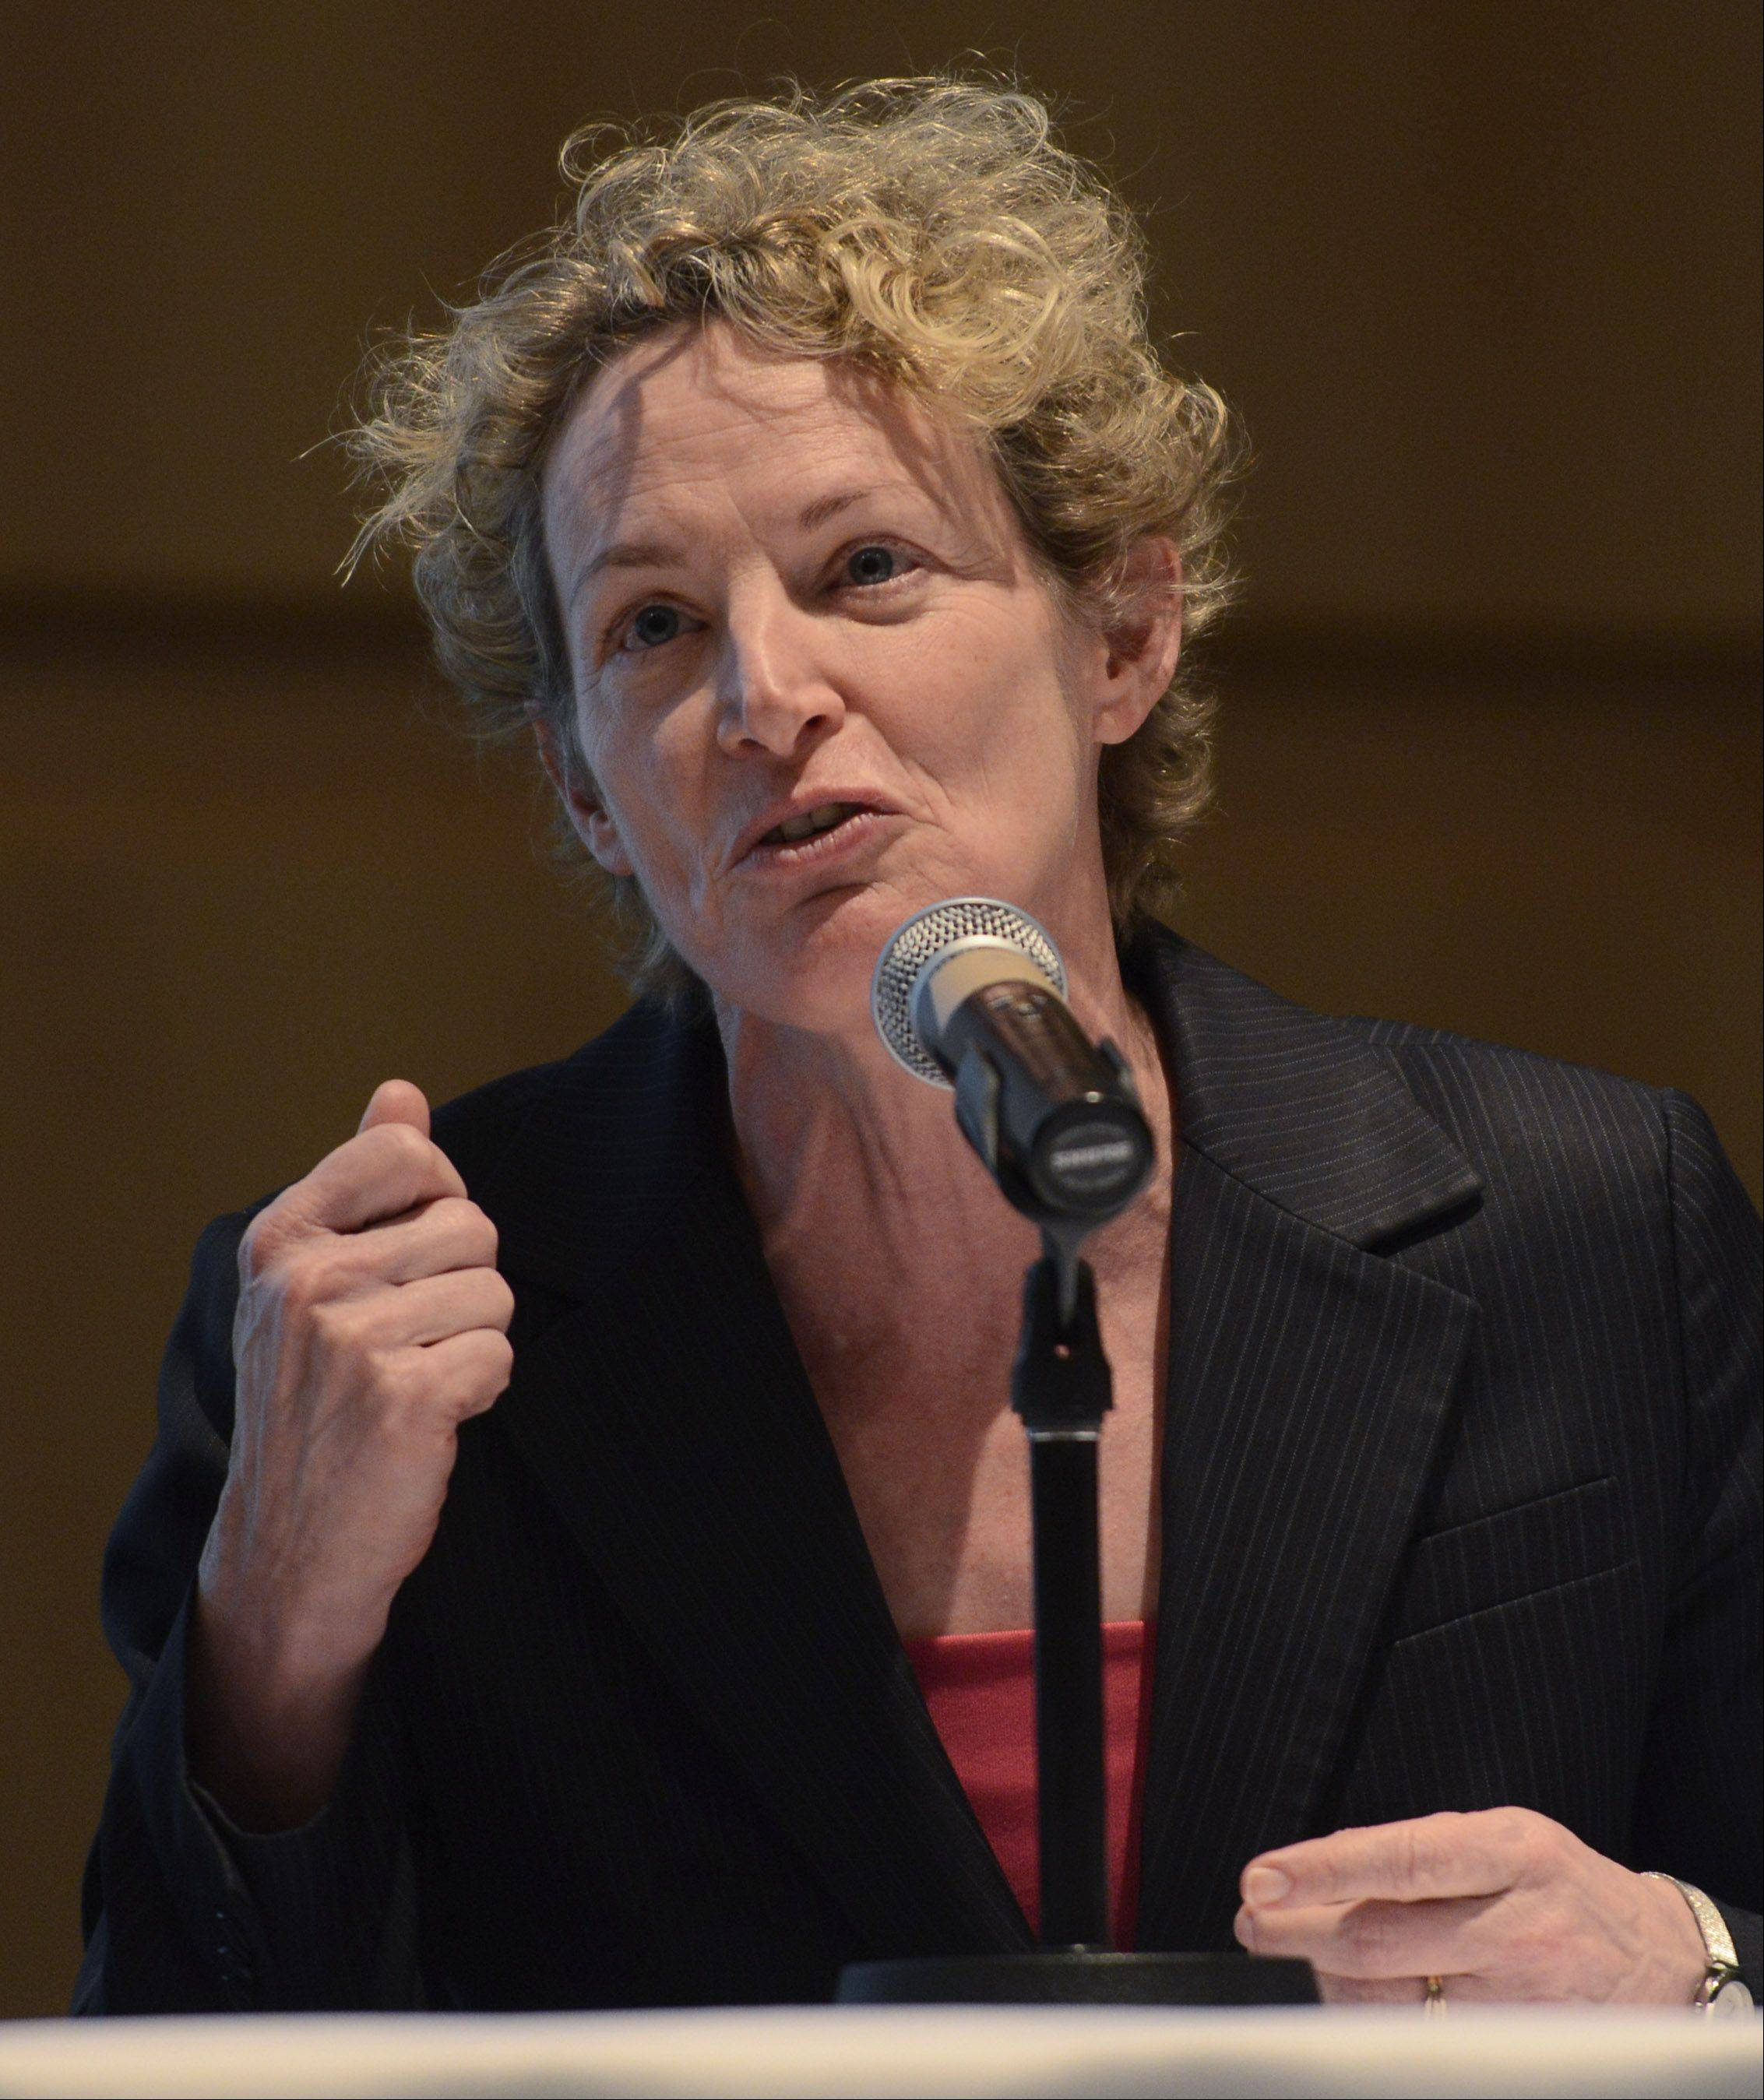 State Rep. Elaine Nekritz speaks during Wednesday's pension reform forum sponsored by the Daily Herald and Reboot Illinois. The event was held at Harper College in Palatine.